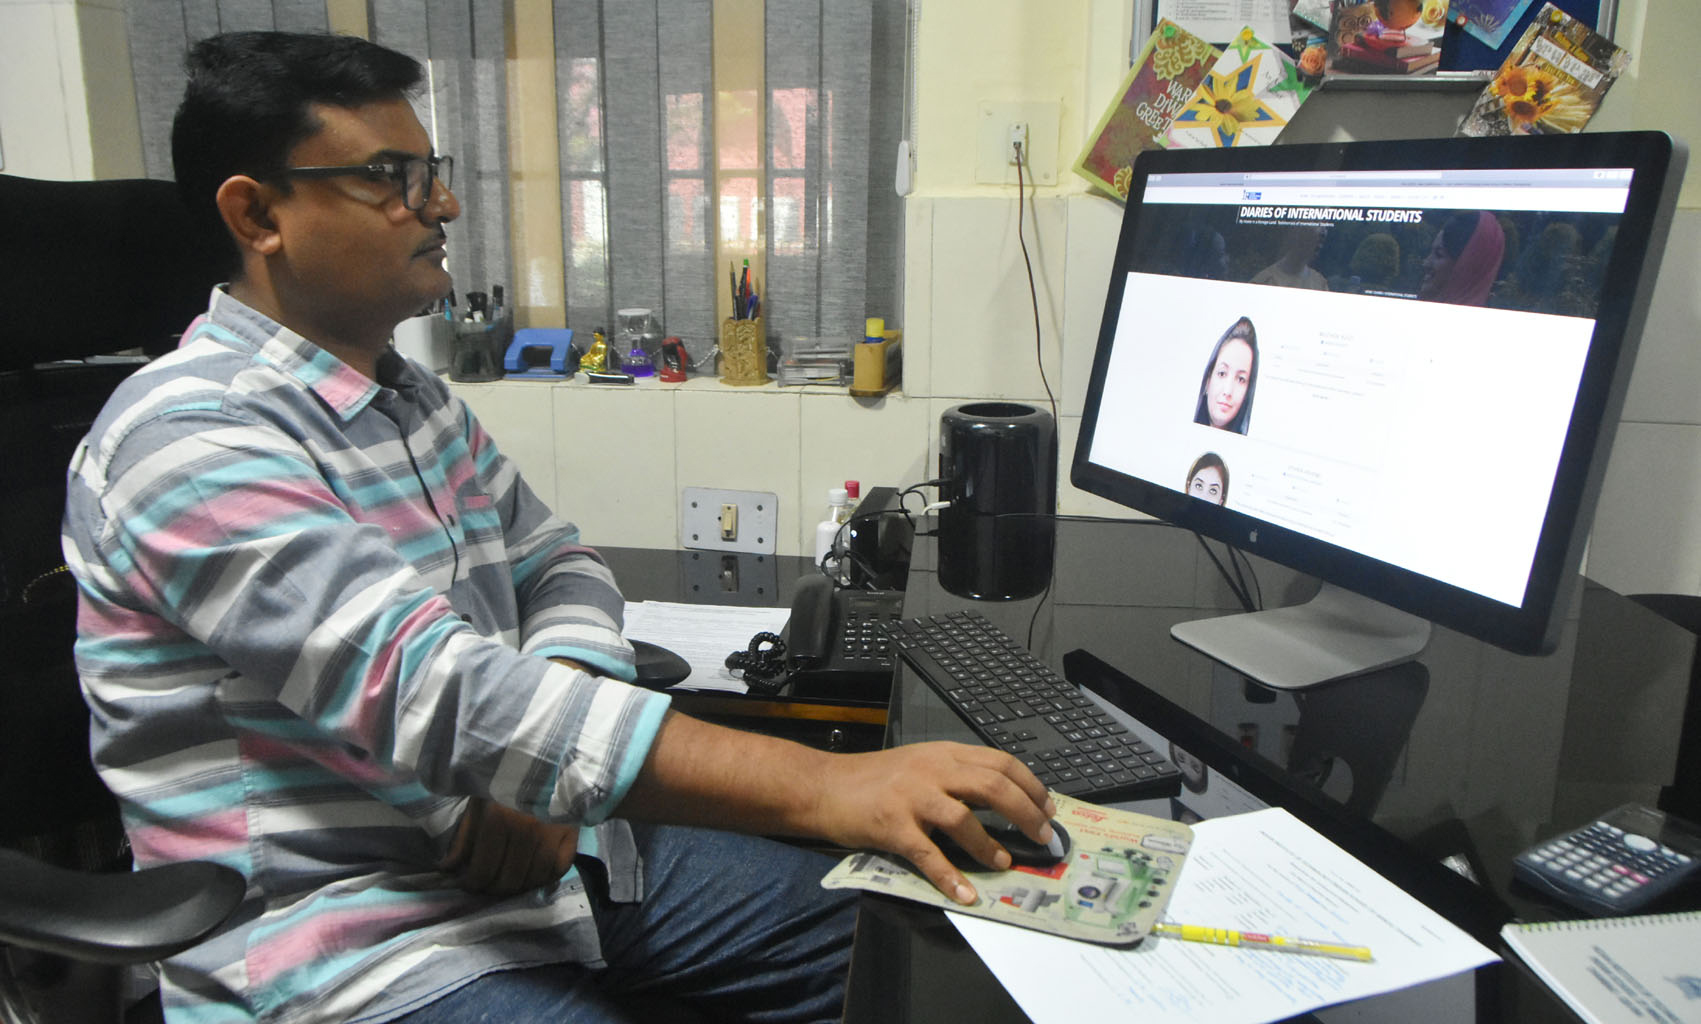 Professor Dheeraj Kumar, Department of Mining Engineering, IIT(ISM), Dhanbad, watches the diaries of international students portal on his computer at his office in on Wednesday, June 24, 2020.